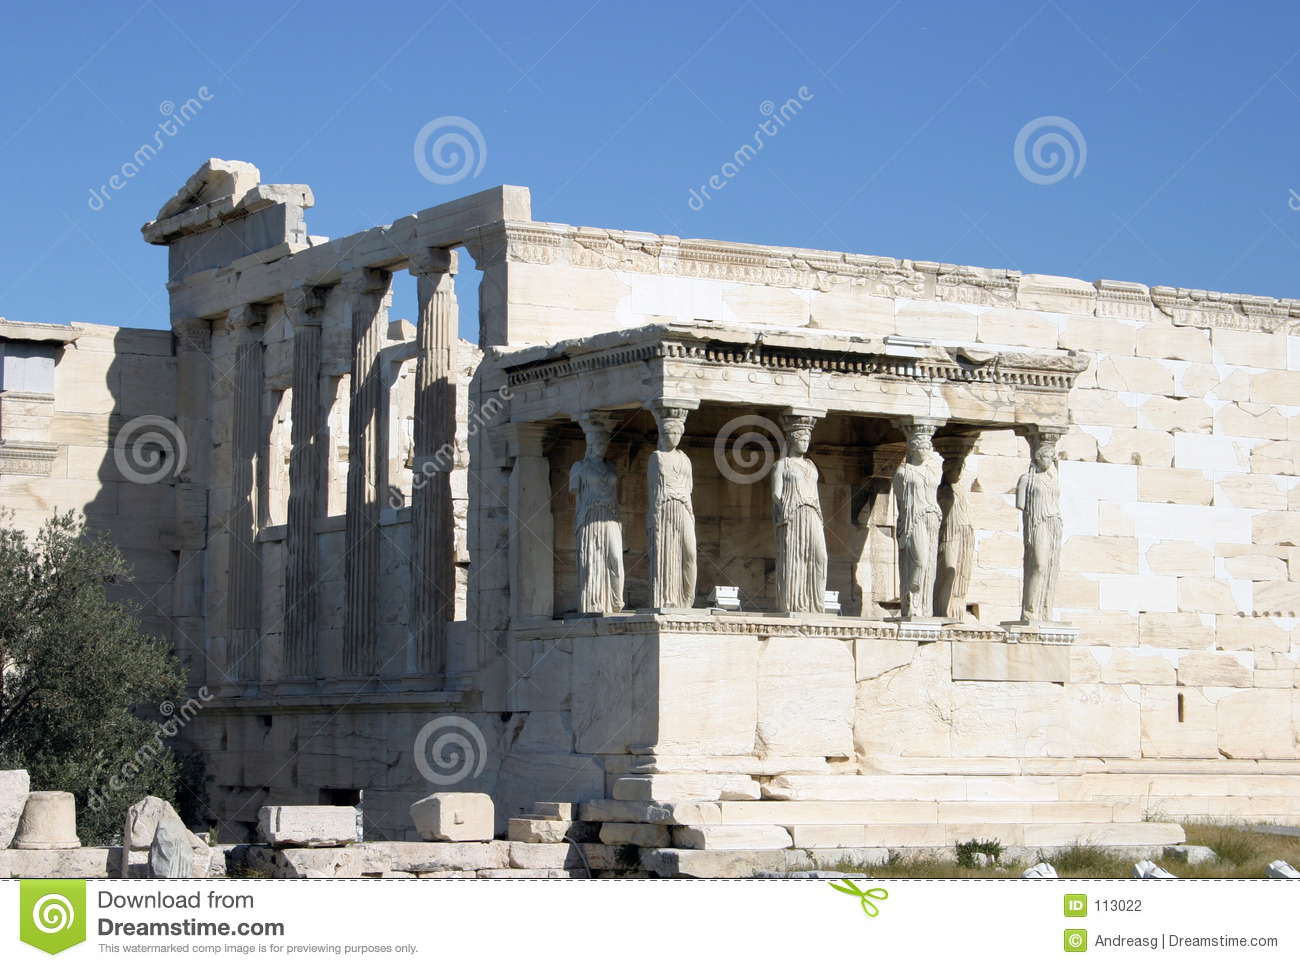 Kariatides no Erechteion